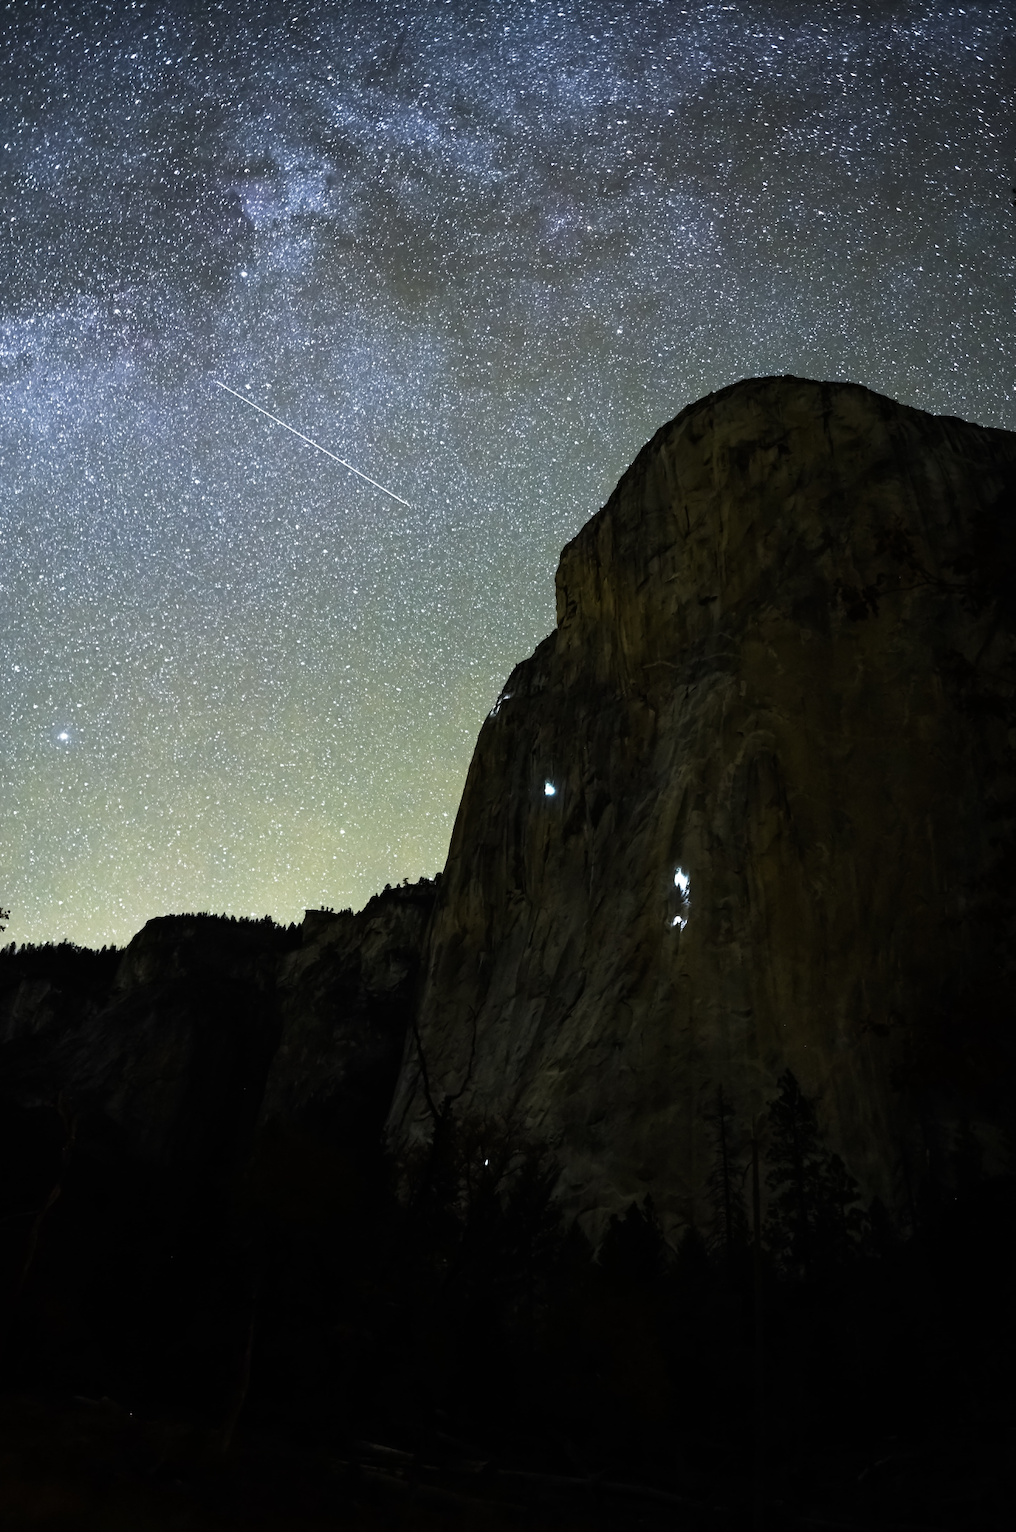 starry night sky and climbers climbing up the side of a mountain